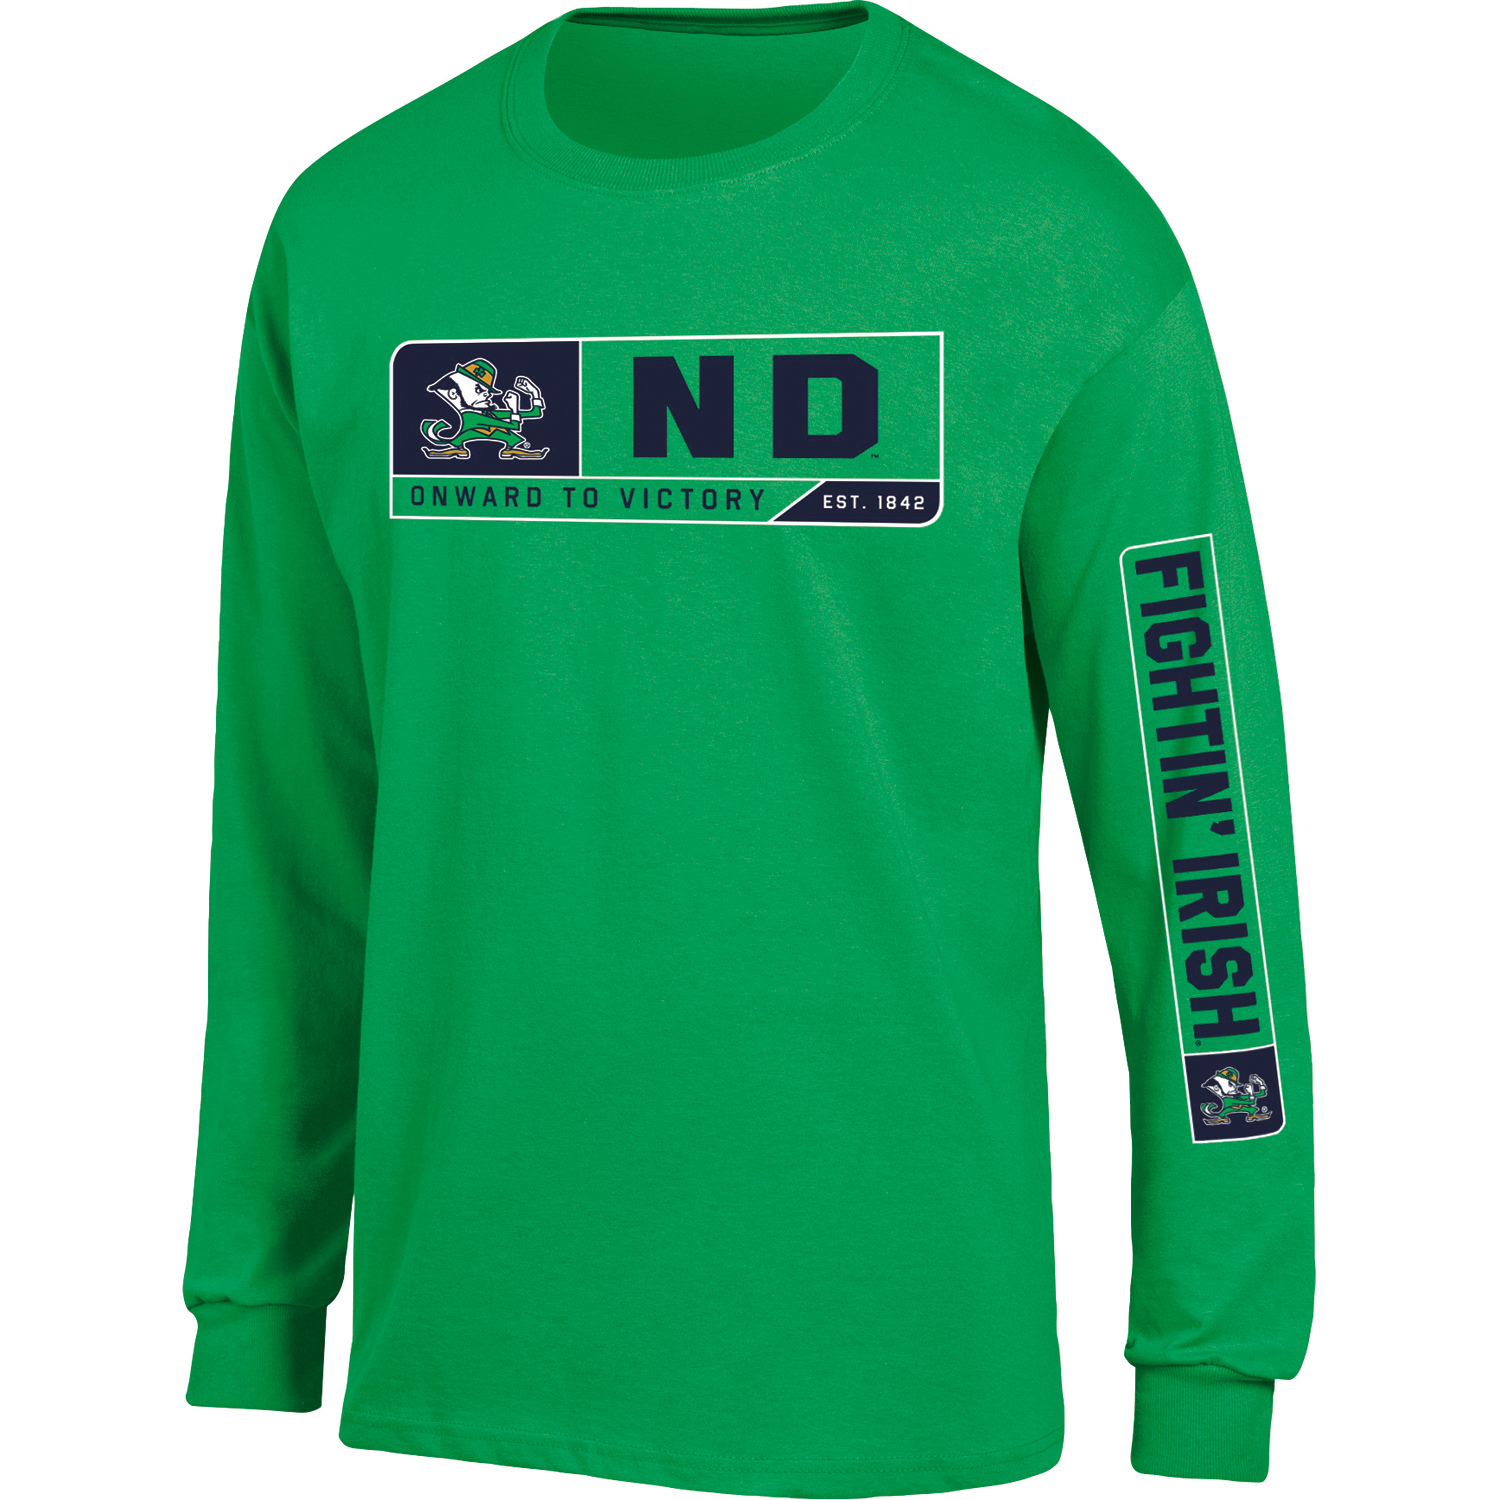 Men's Russell Green Notre Dame Fighting Irish Team Long Sleeve T-Shirt